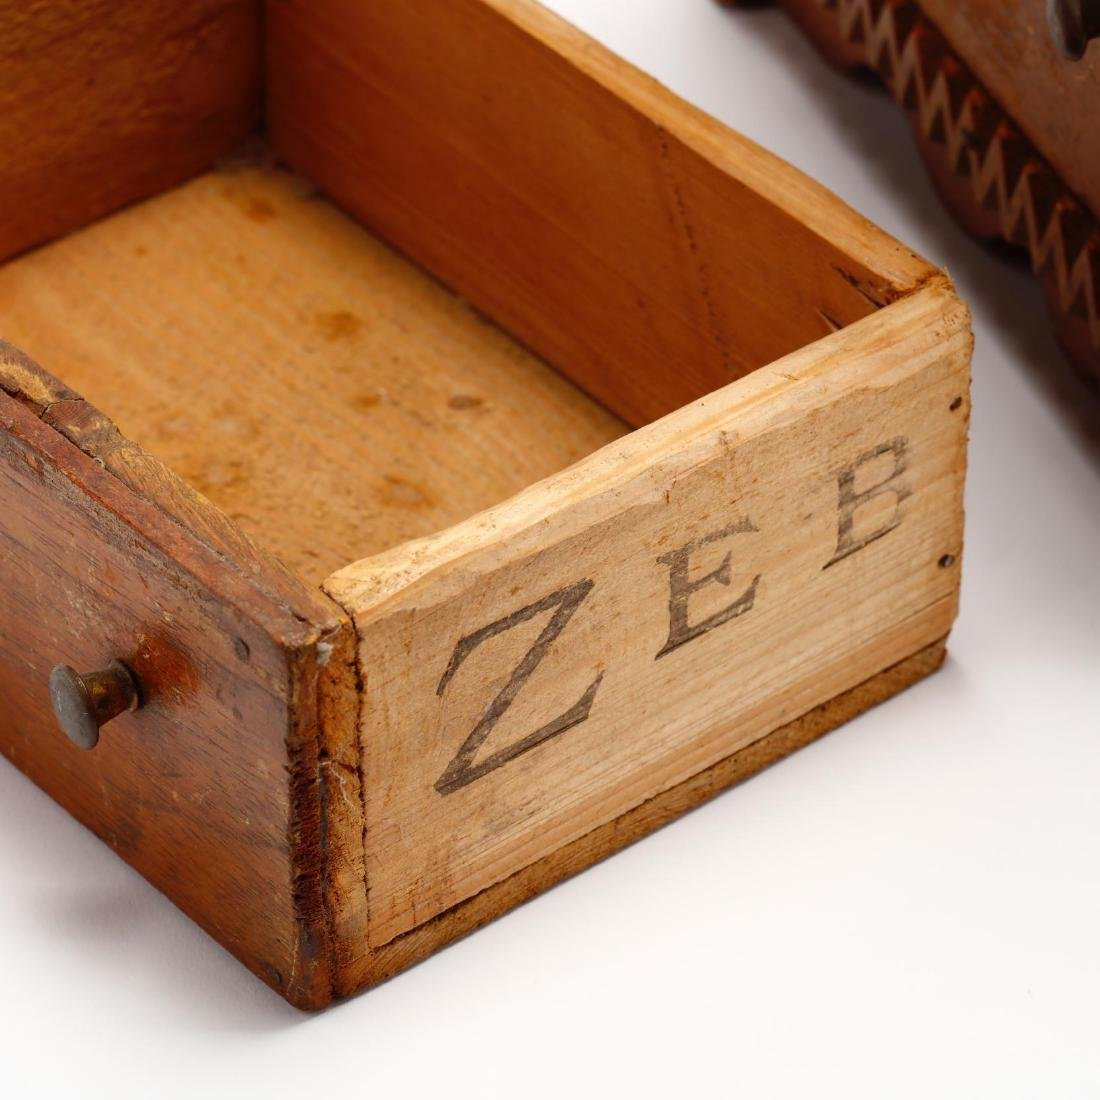 Two Vintage Tramp Art Miniature Chests of Drawers - 10